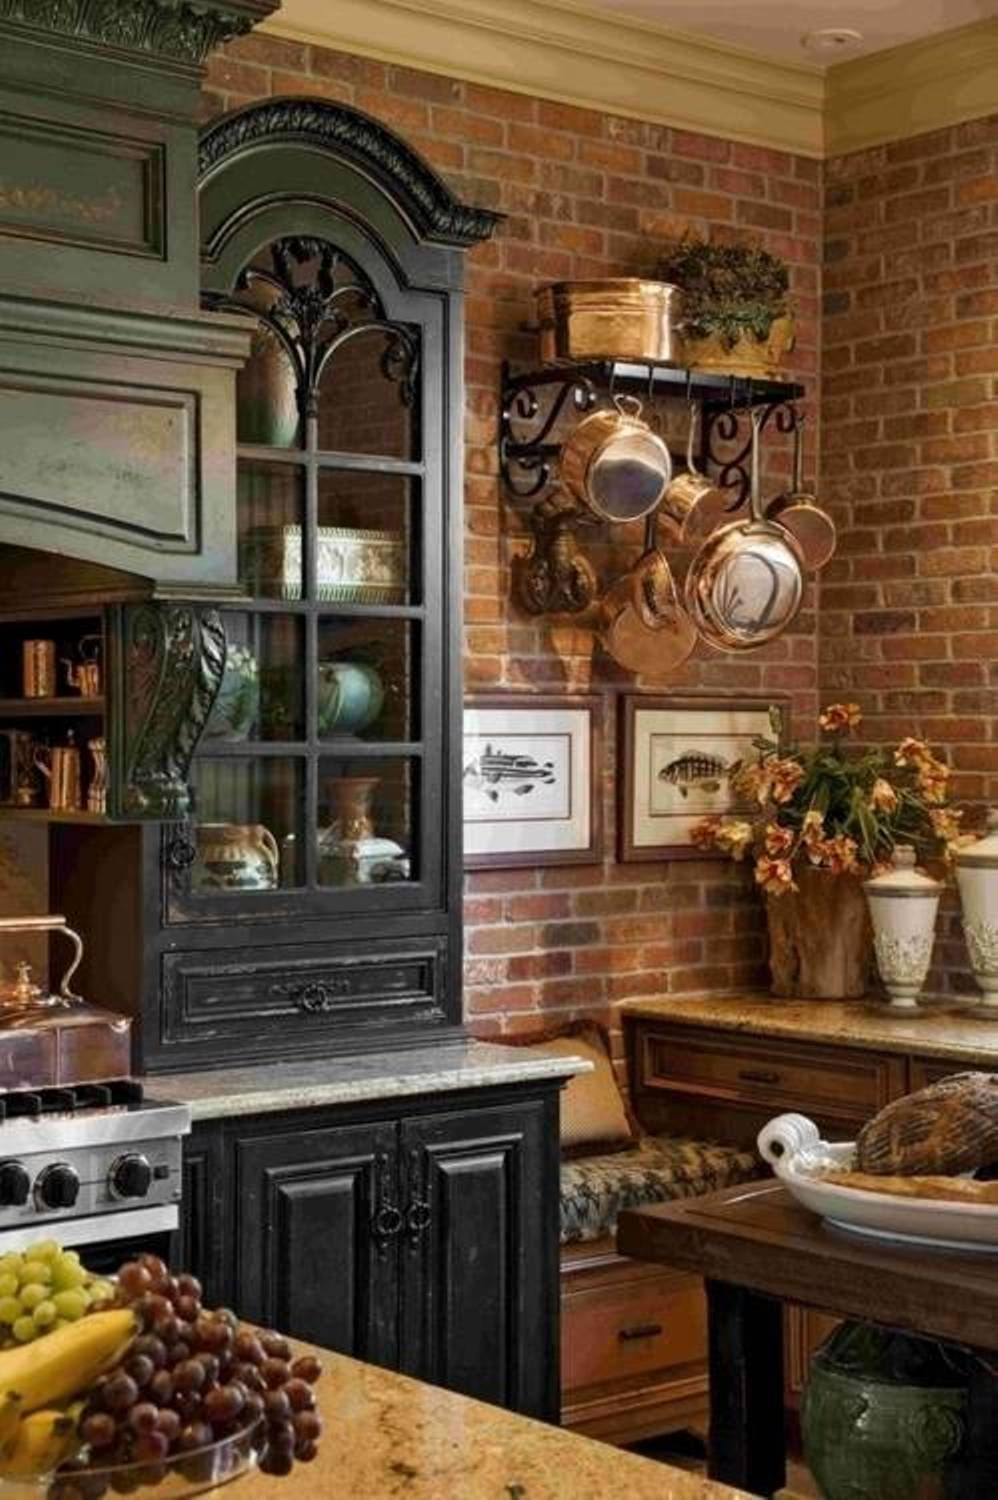 Best Distressed Black Kitchen Cabinets In Rustic Kitchen Style 400 x 300